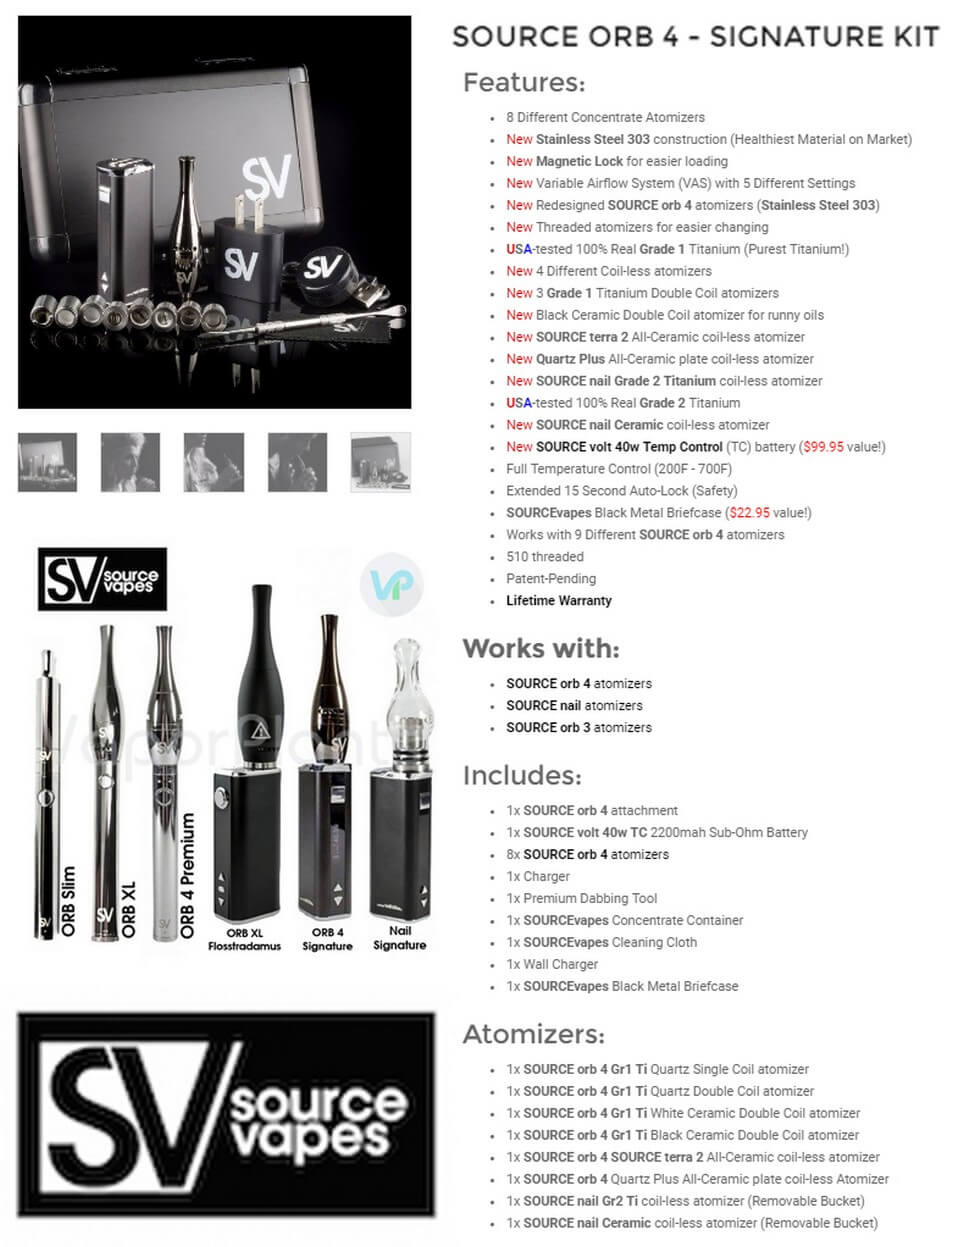 Source ORB 4 Signature Vape for Wax Information